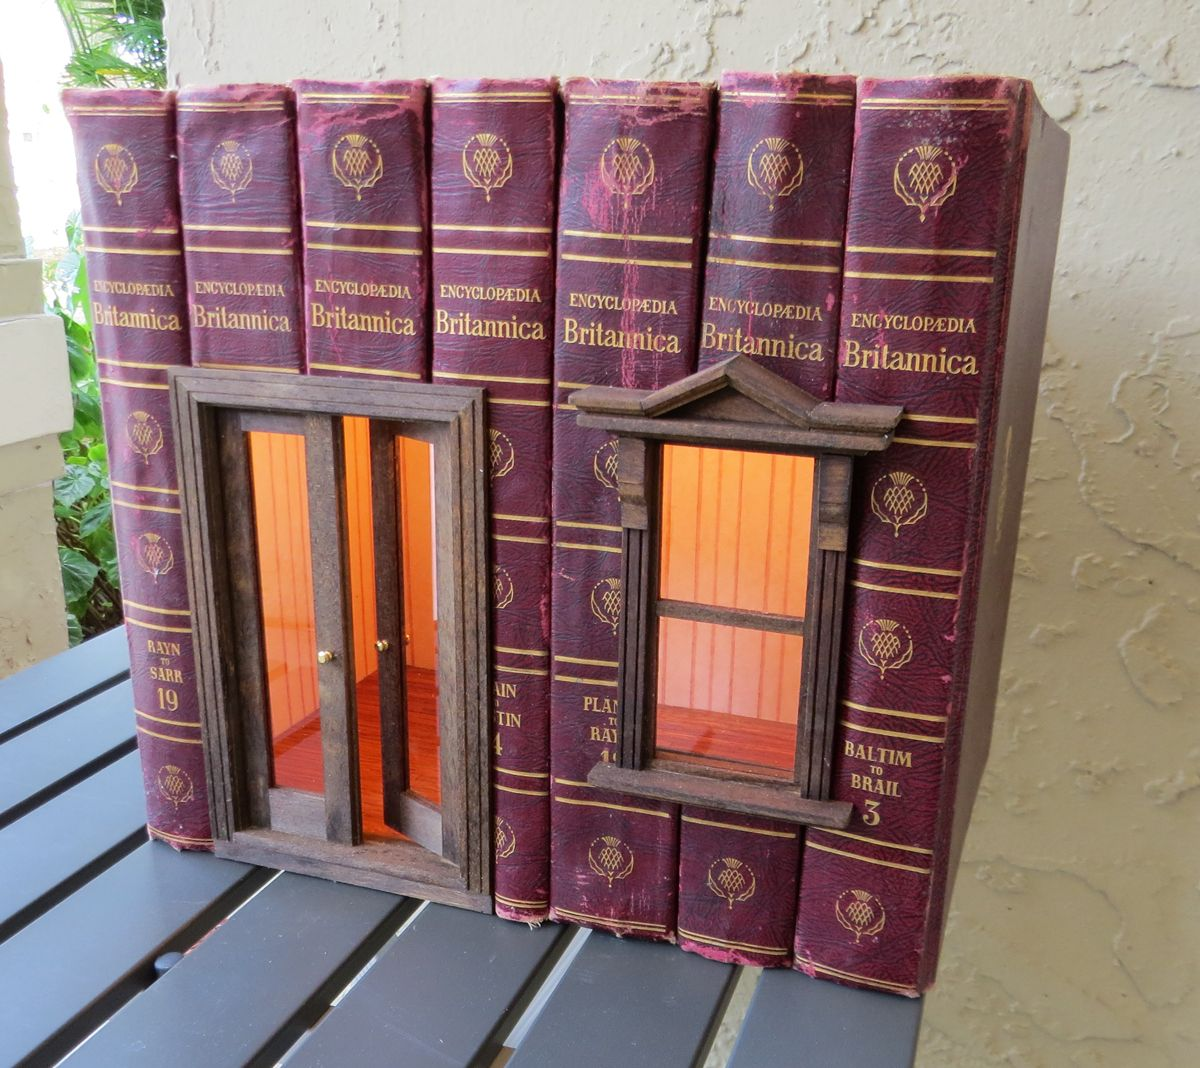 This disturbs me. Probably because Mom valued the Encyclopedia Britannica she found second-hand as one of her greatest accomplishments. #miniaturerooms